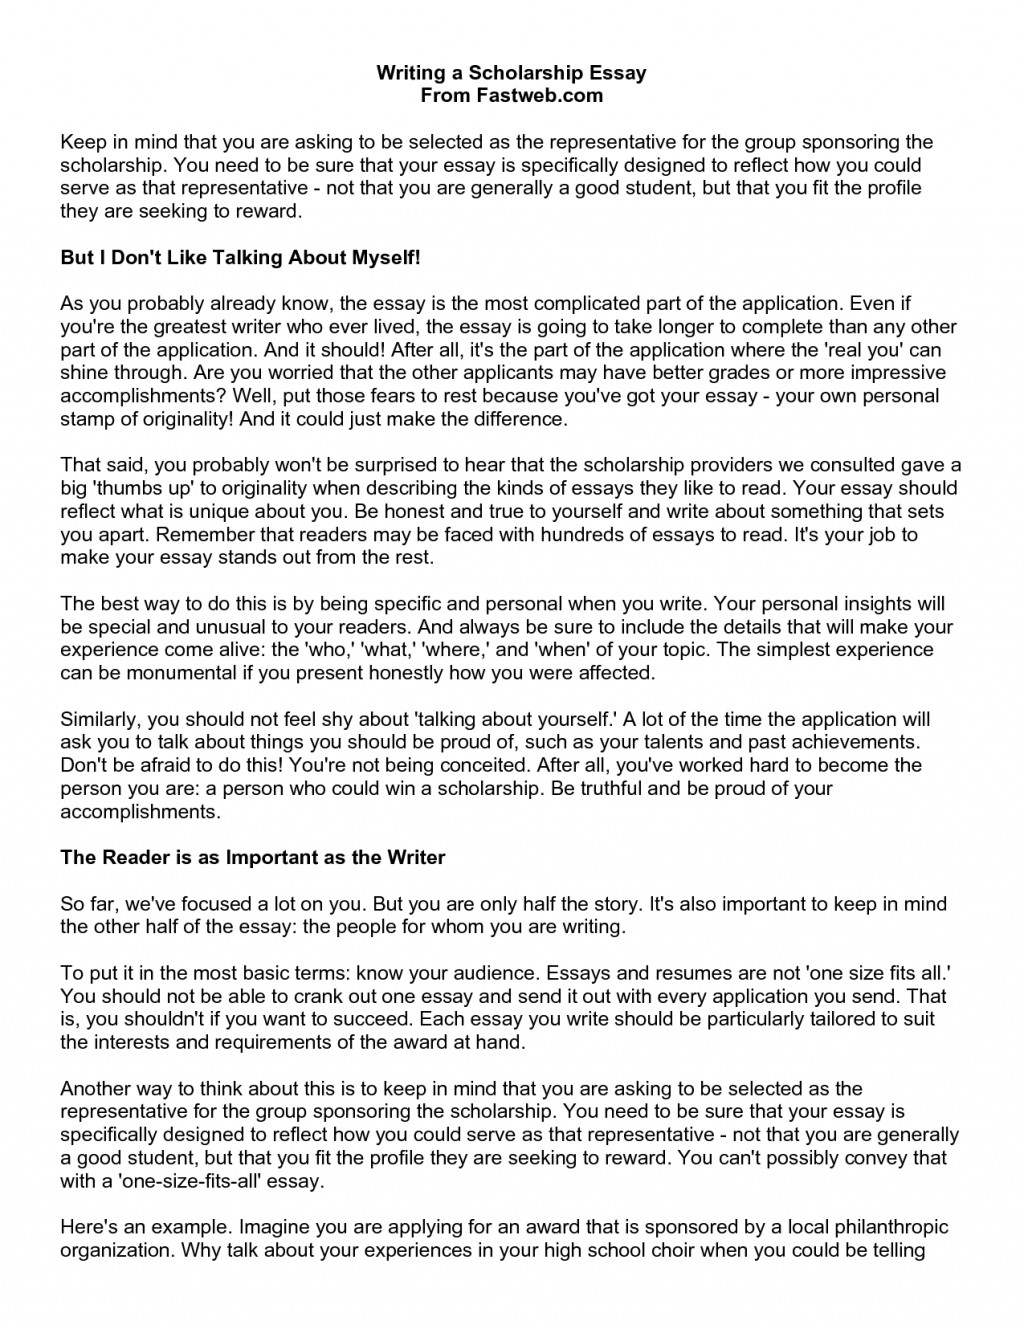 014 Why Do You Deserve This Scholarship Essay Over Coursework Service Epassignmentuill Tips On How To Write Good Axvul Study Abroad Samples About Financial Need Awesome Think Sample A Large